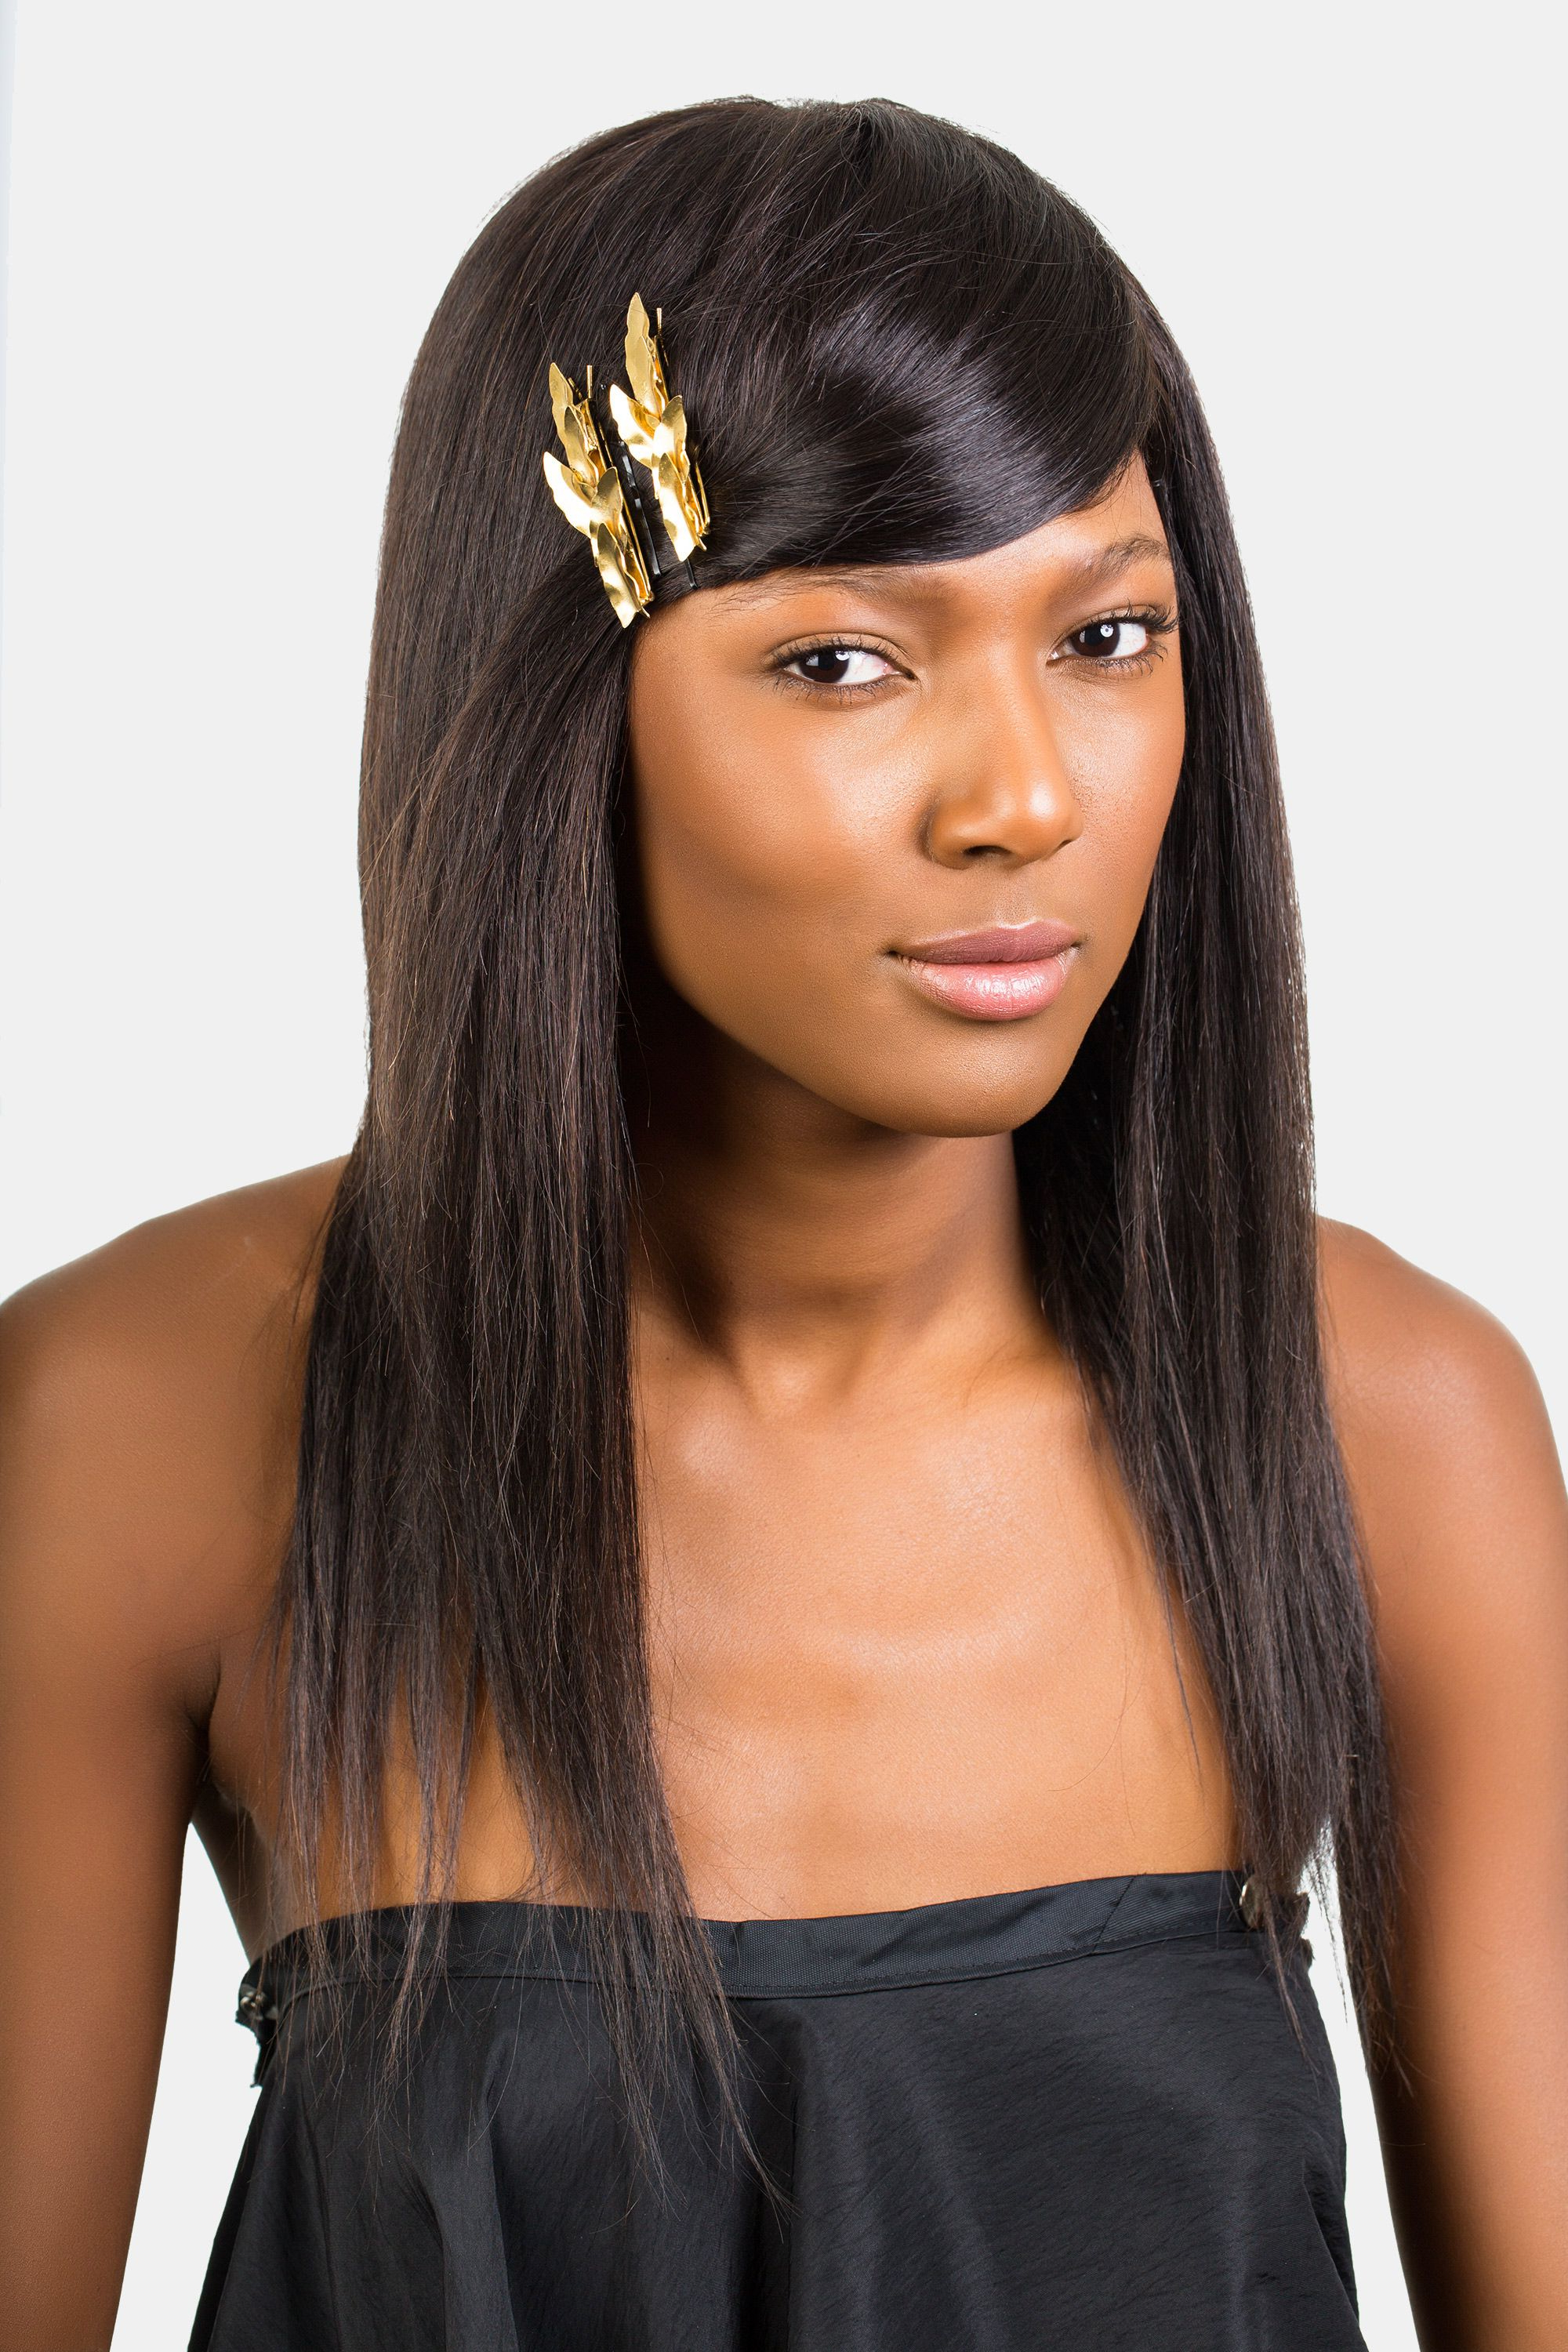 How To Style Bangs – 5 Hairstyles To Keep Your Bangs Out Of Pertaining To 2019 Braided High Bun Hairstyles With Layered Side Bang (View 19 of 20)